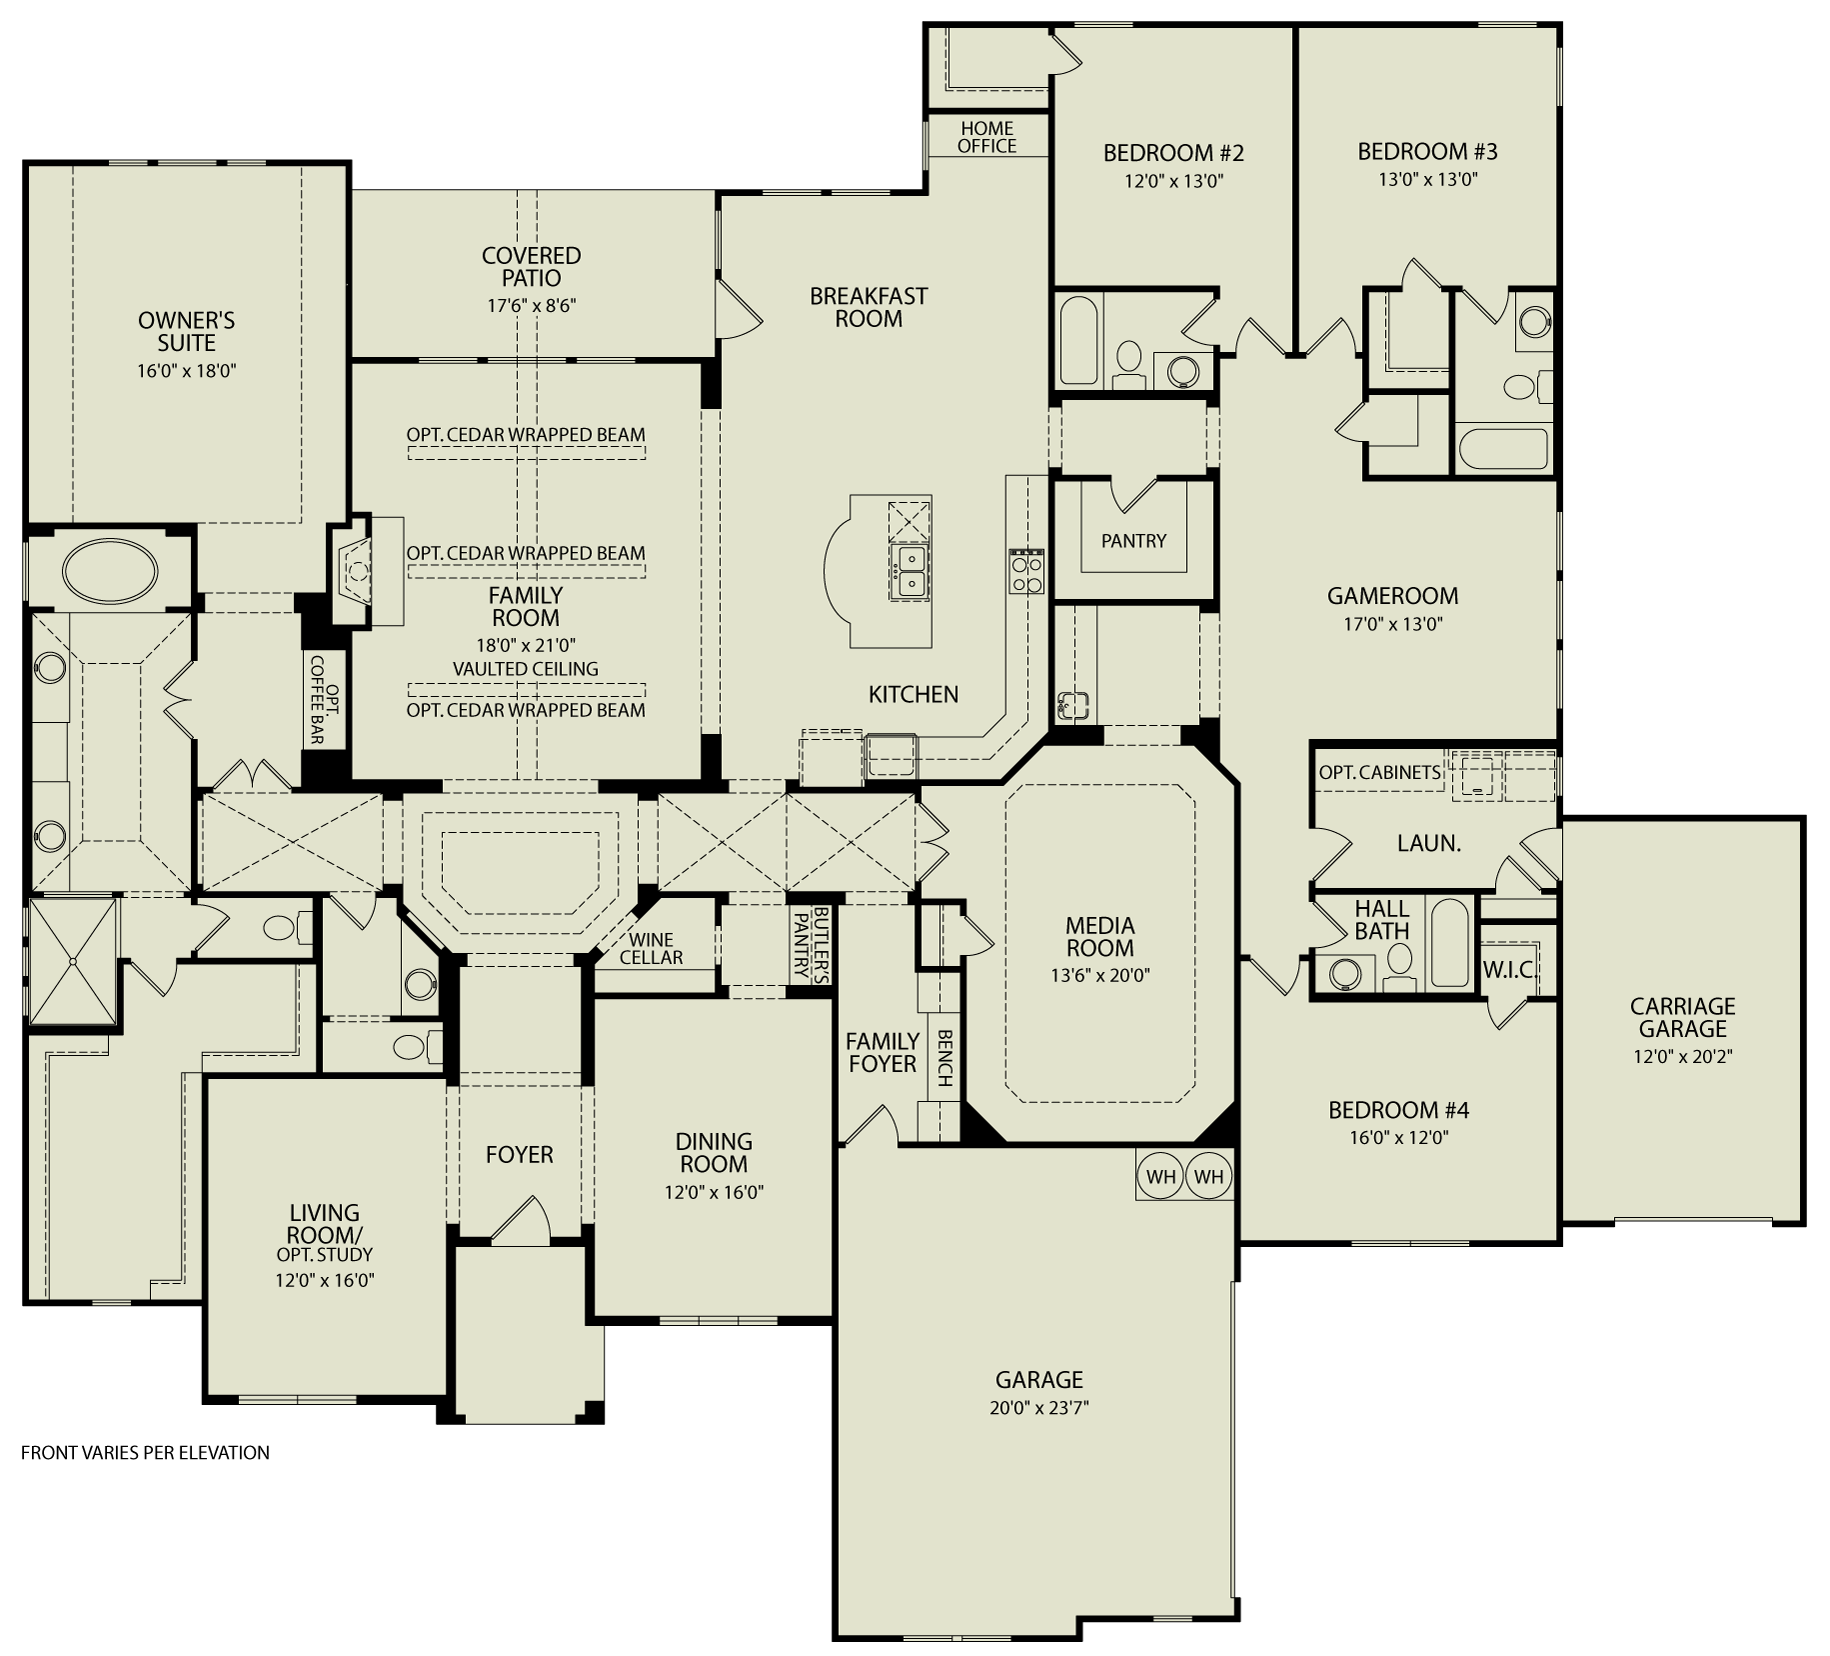 15++ Interactive floor plans image ideas